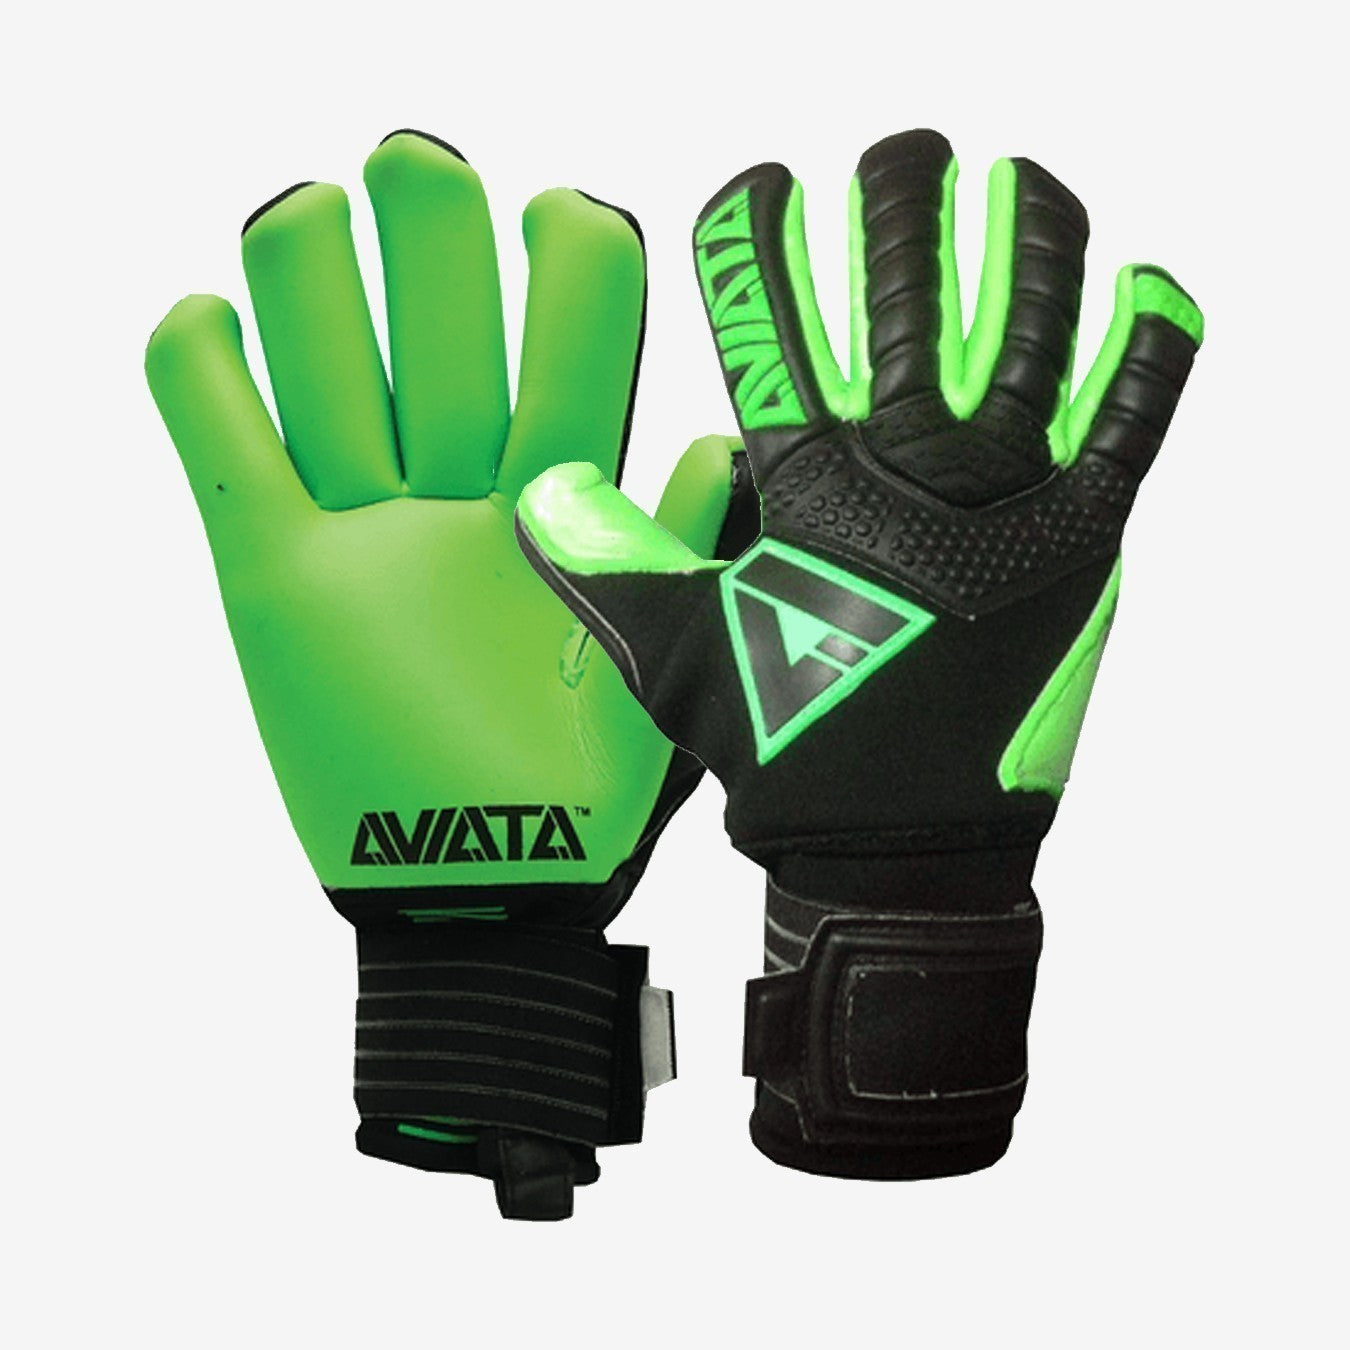 Stretta Special Yeti Edition Negative Cut GK Glove - Green/Black